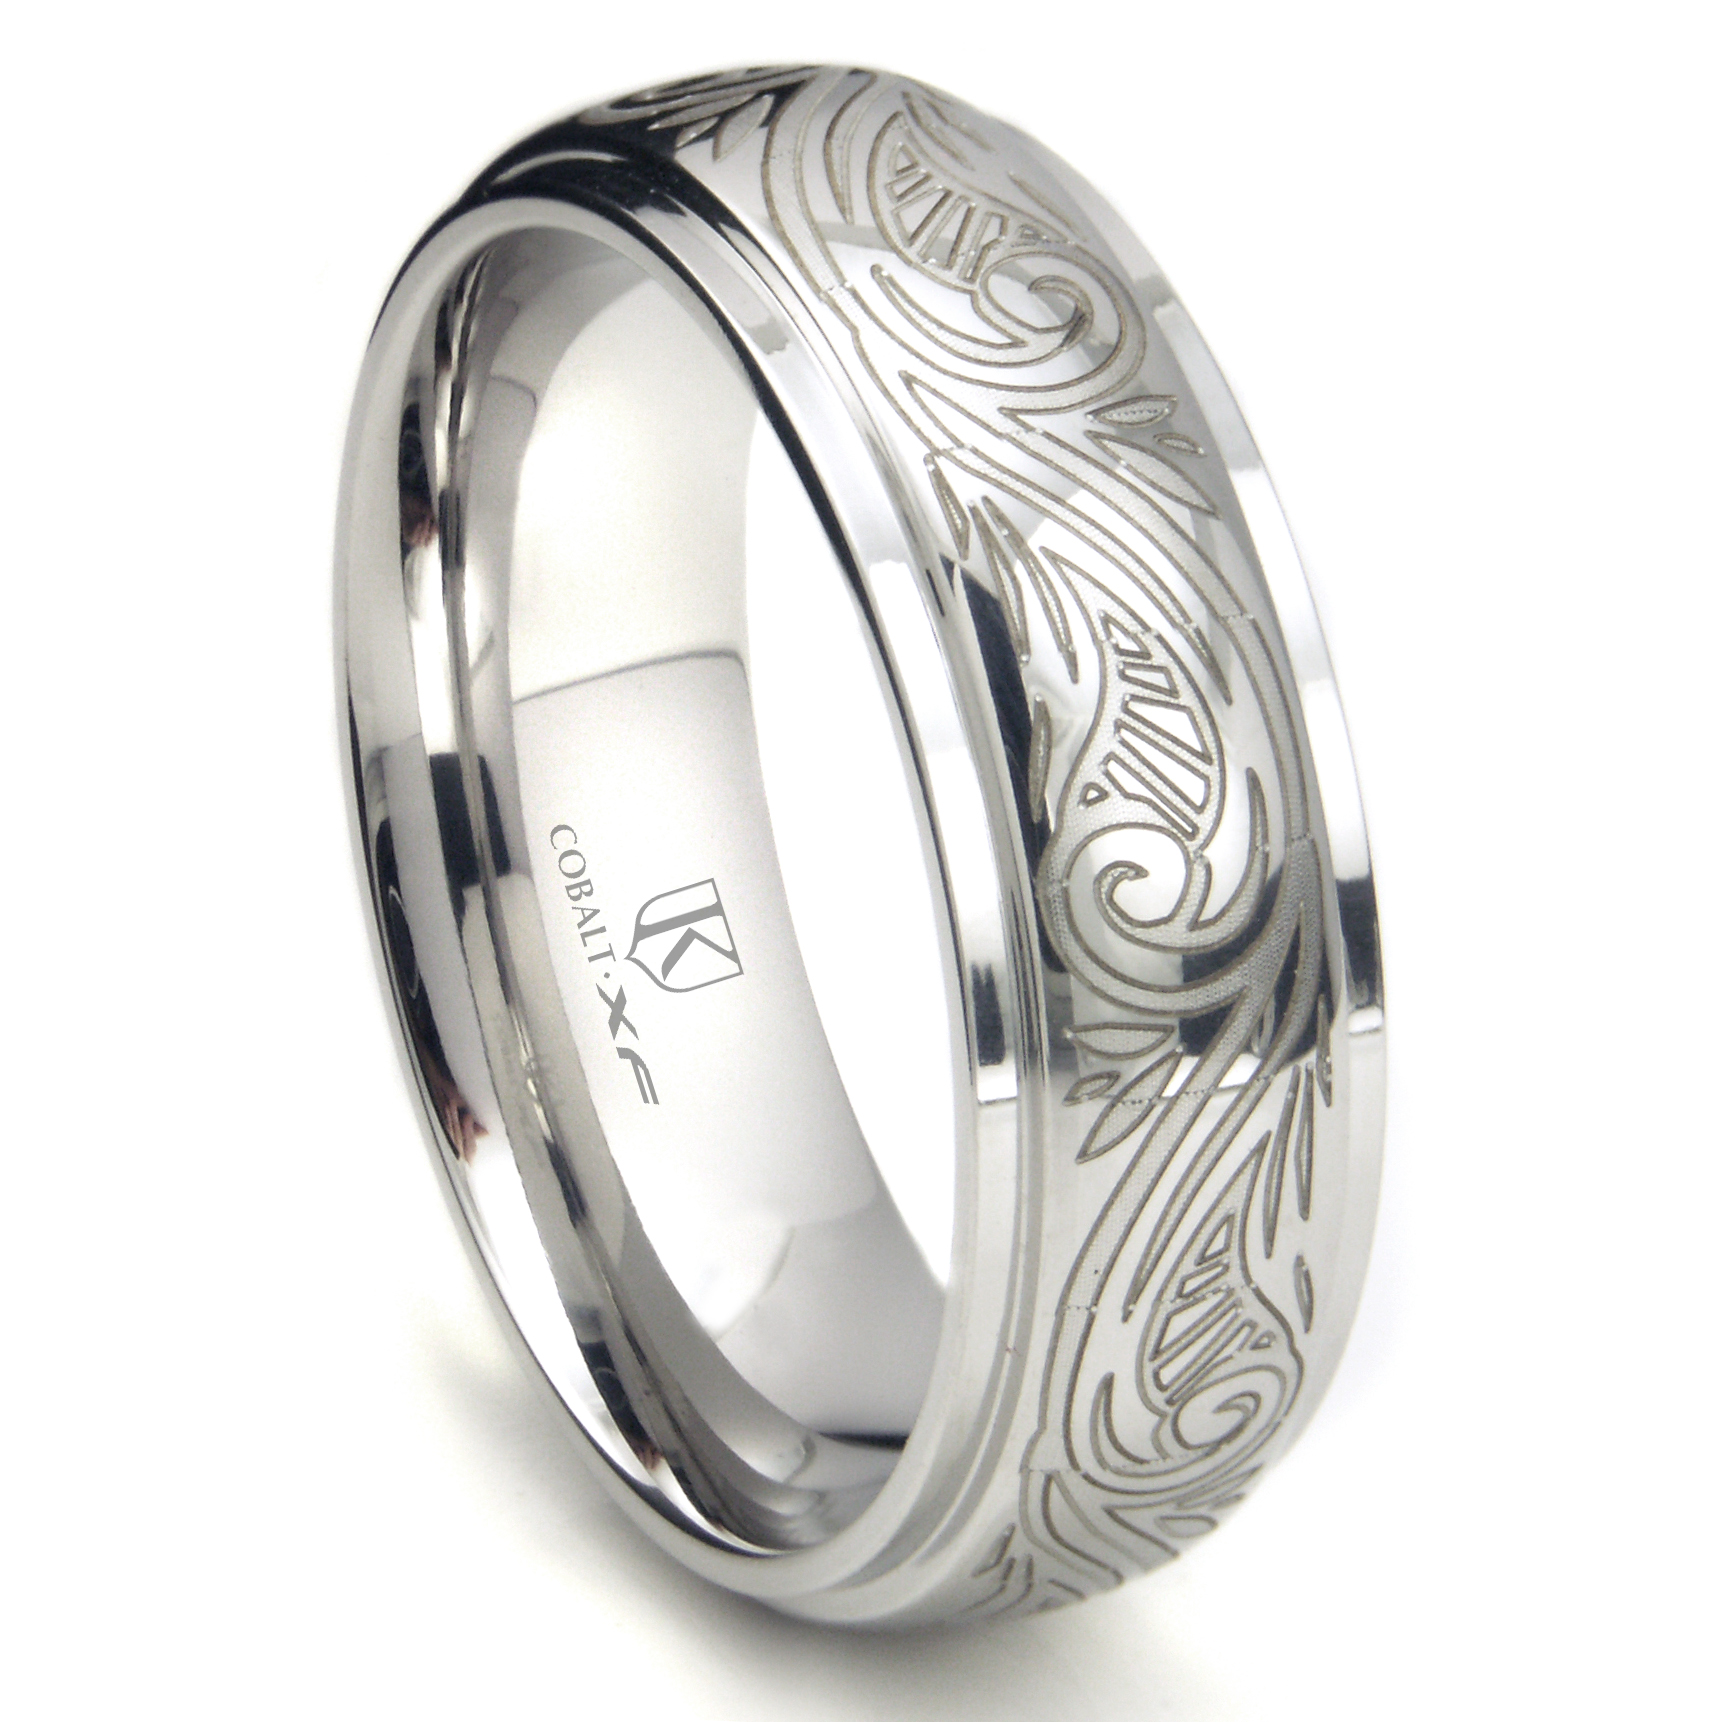 Cobalt XF Chrome 8MM Laser Engraved Paisley Motif Dome Wedding